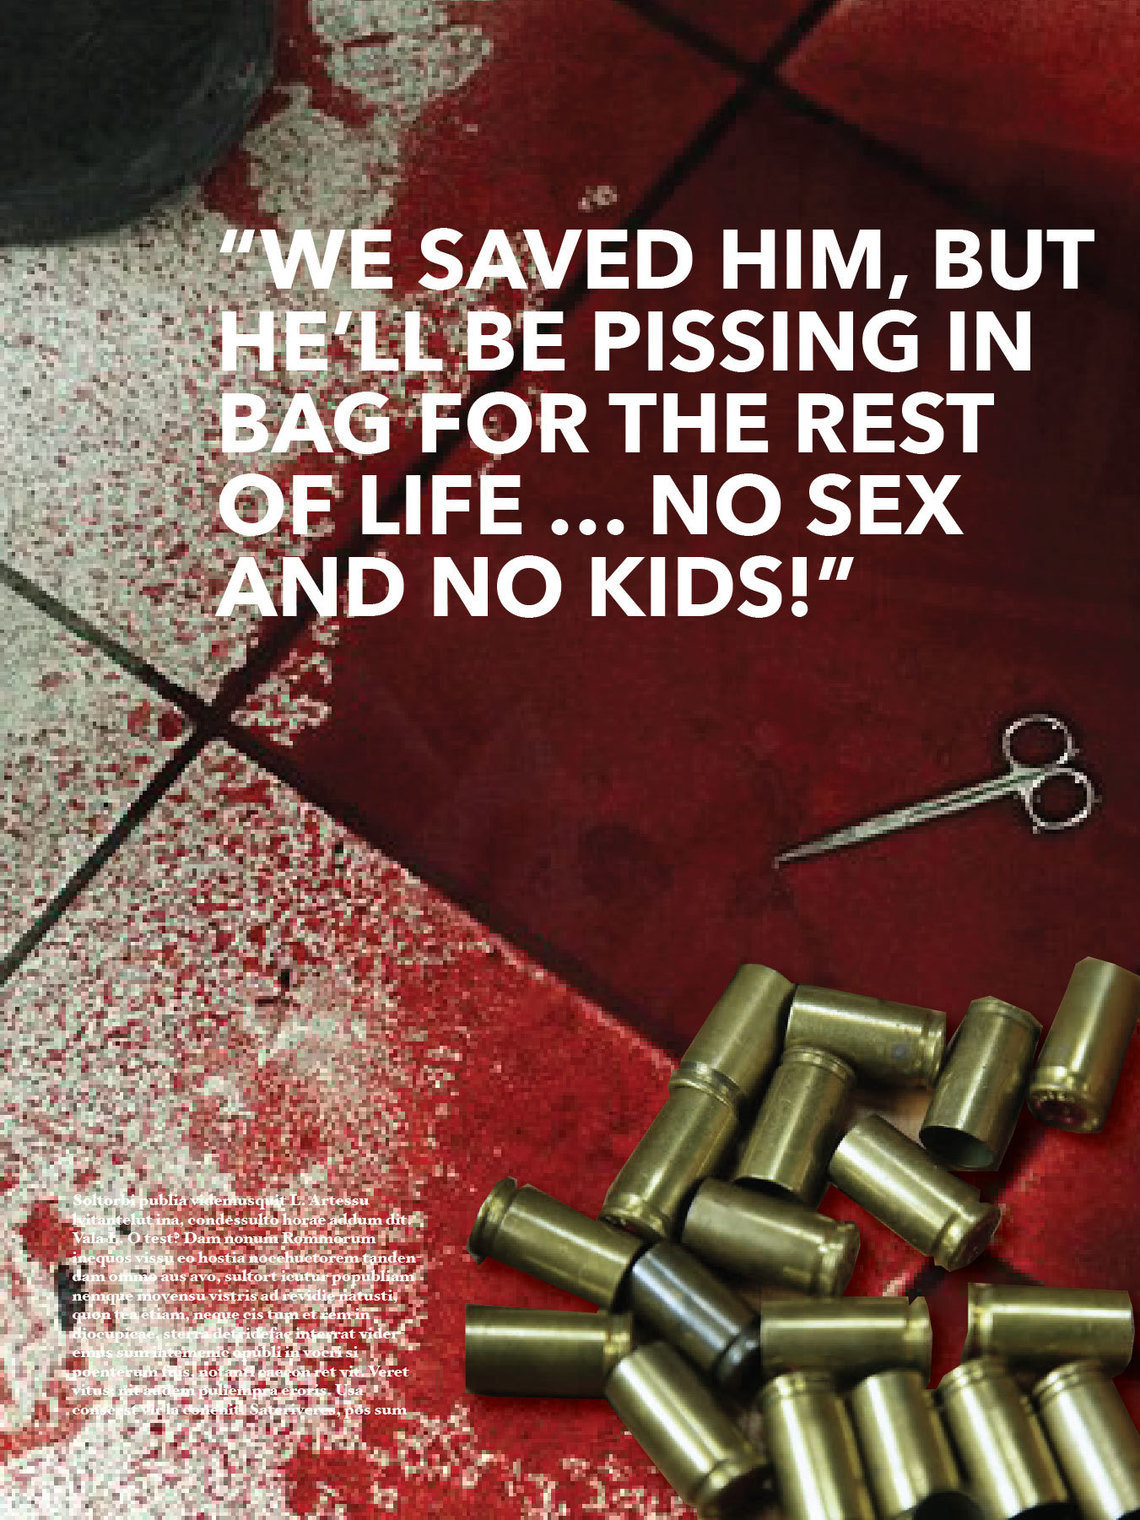 James Evans, an advertising executive, created ad concepts for research purposes that use sex as an incentive to deter gun violence.